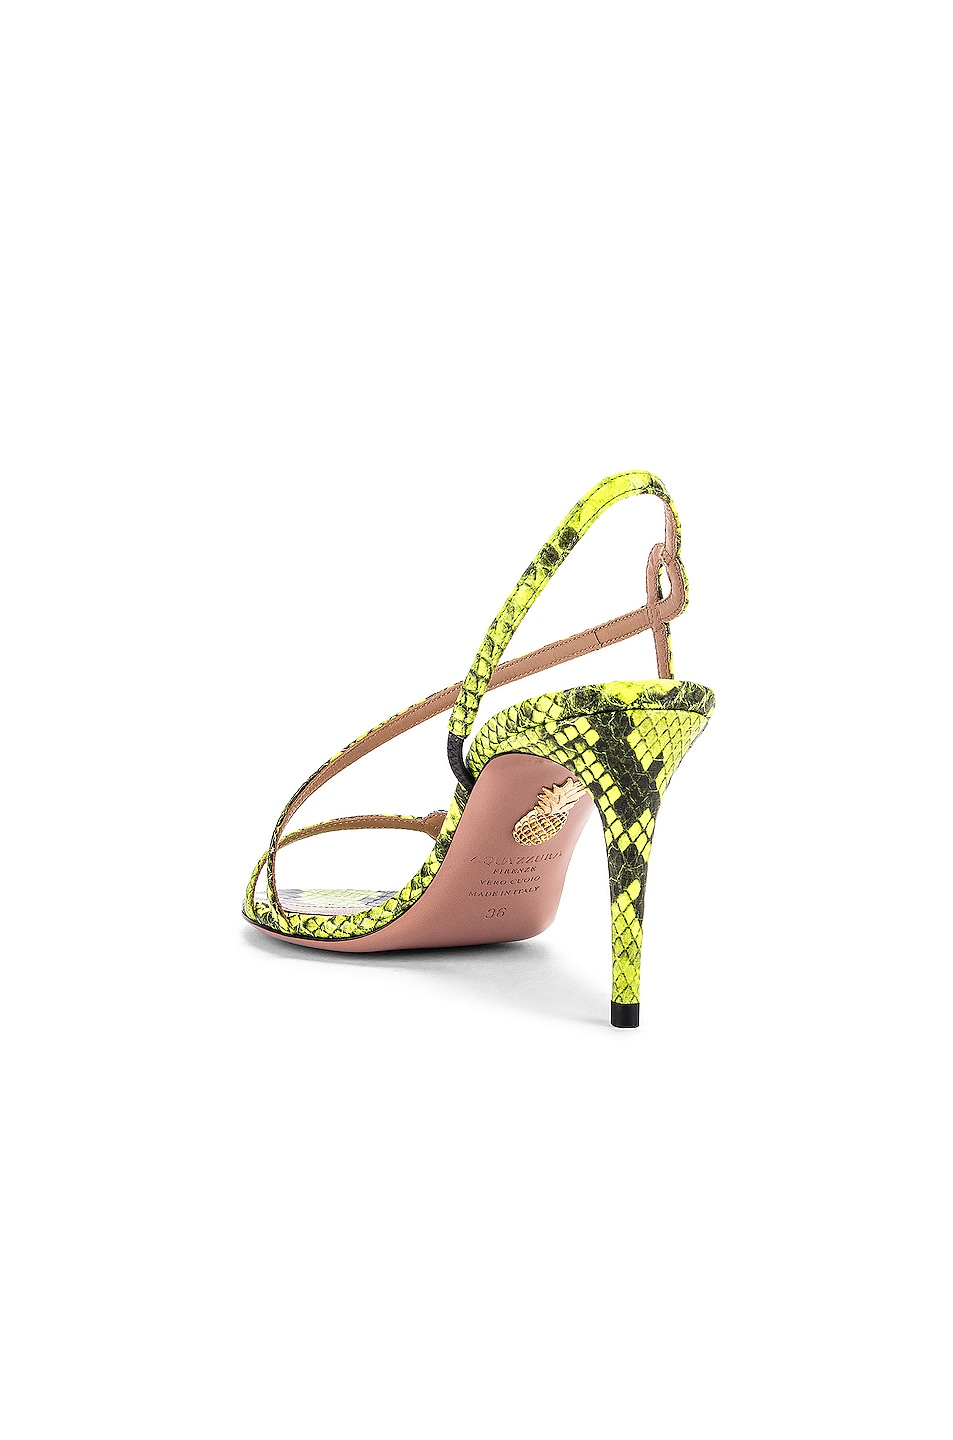 Image 3 of Aquazzura Serpentine 75 Sandal in Acid Green